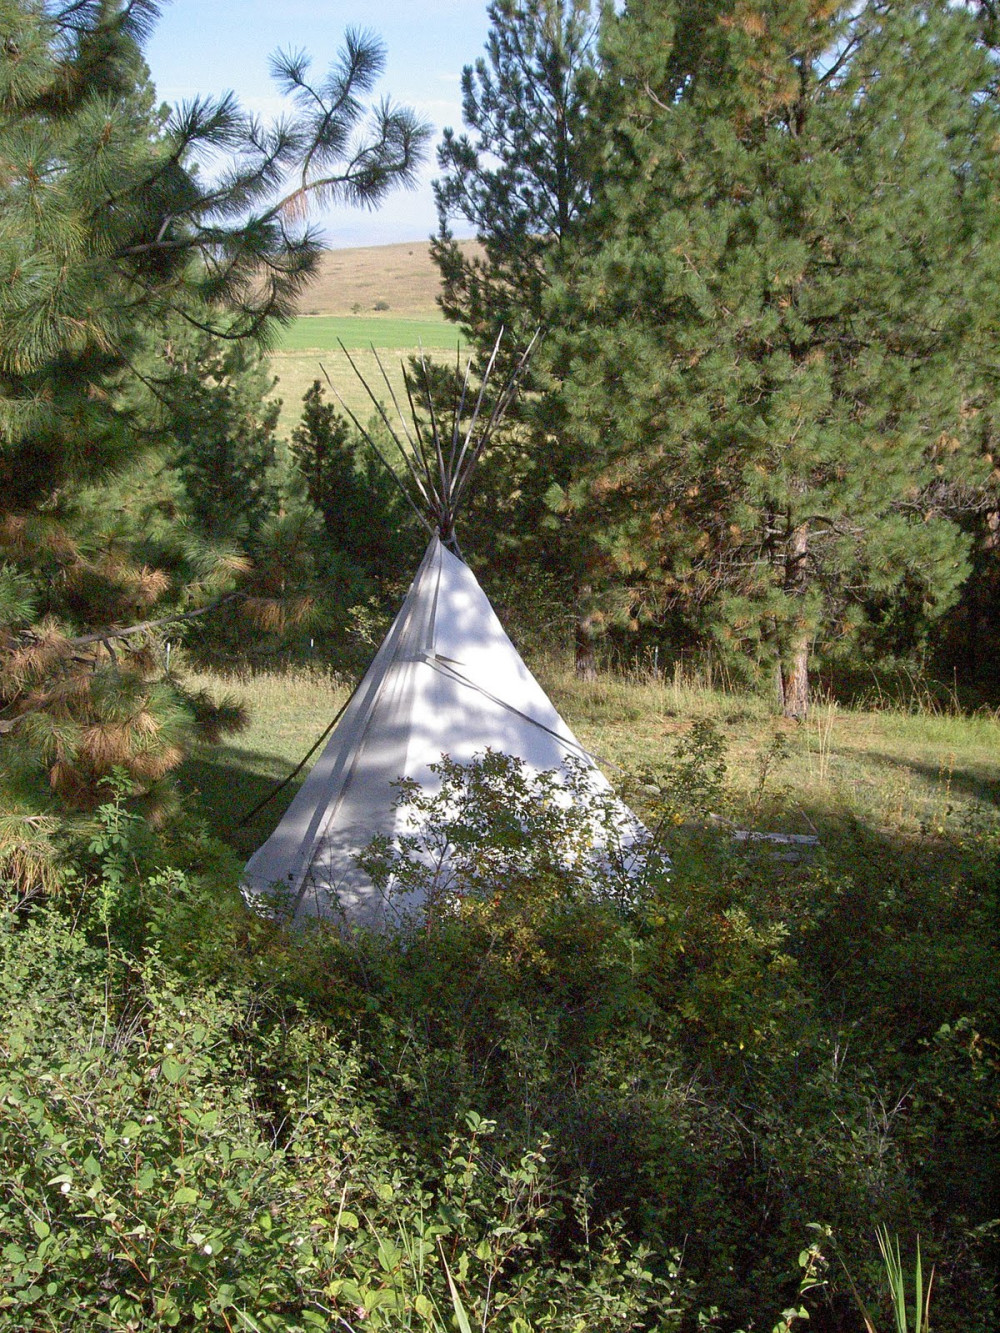 MT Bed and Breakfast Tipi Room